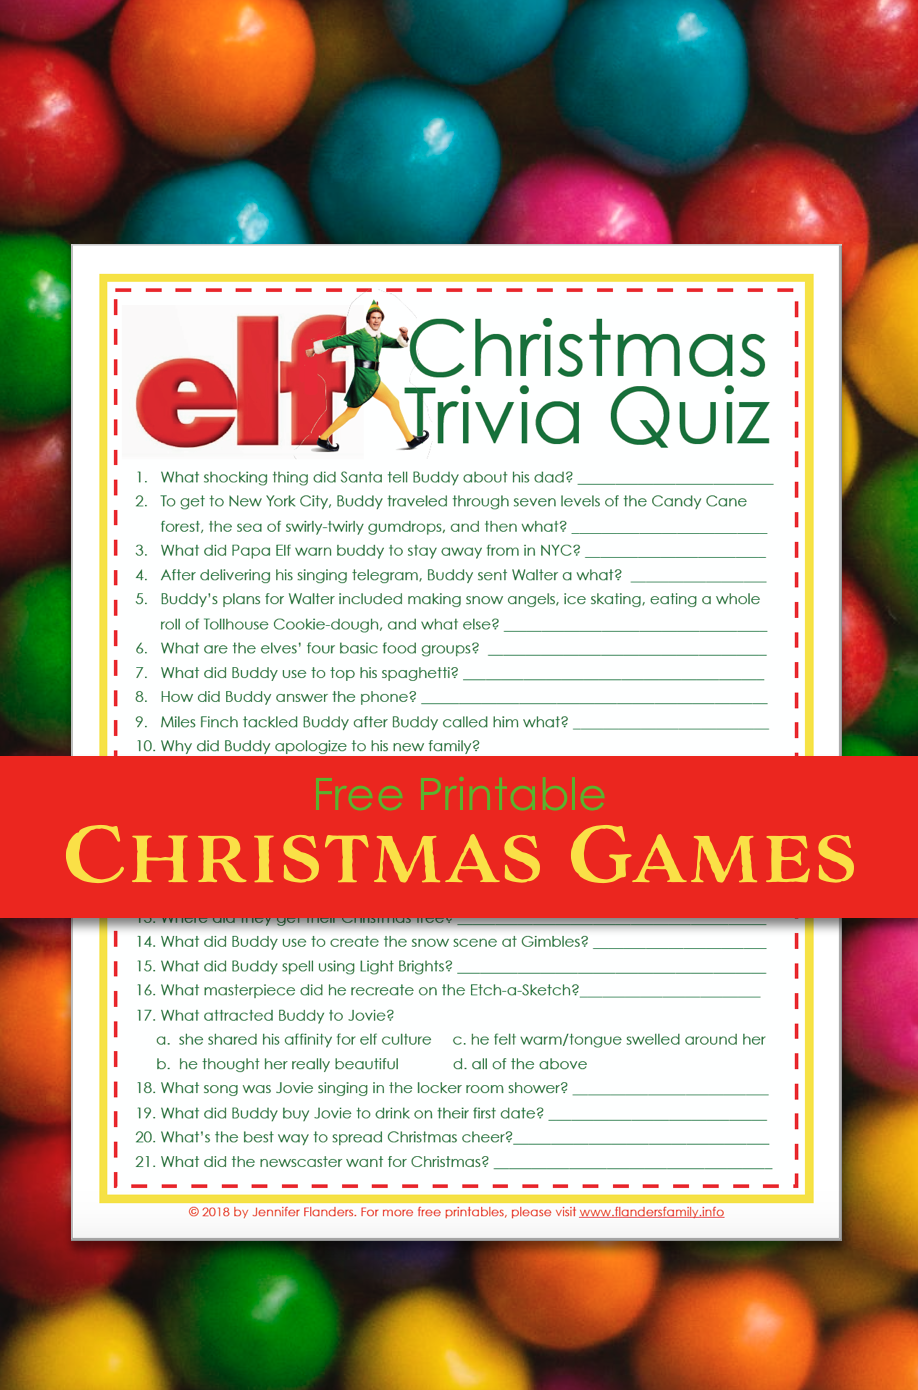 Elf Christmas Trivia Game Free Printable Flanders Family Homelife